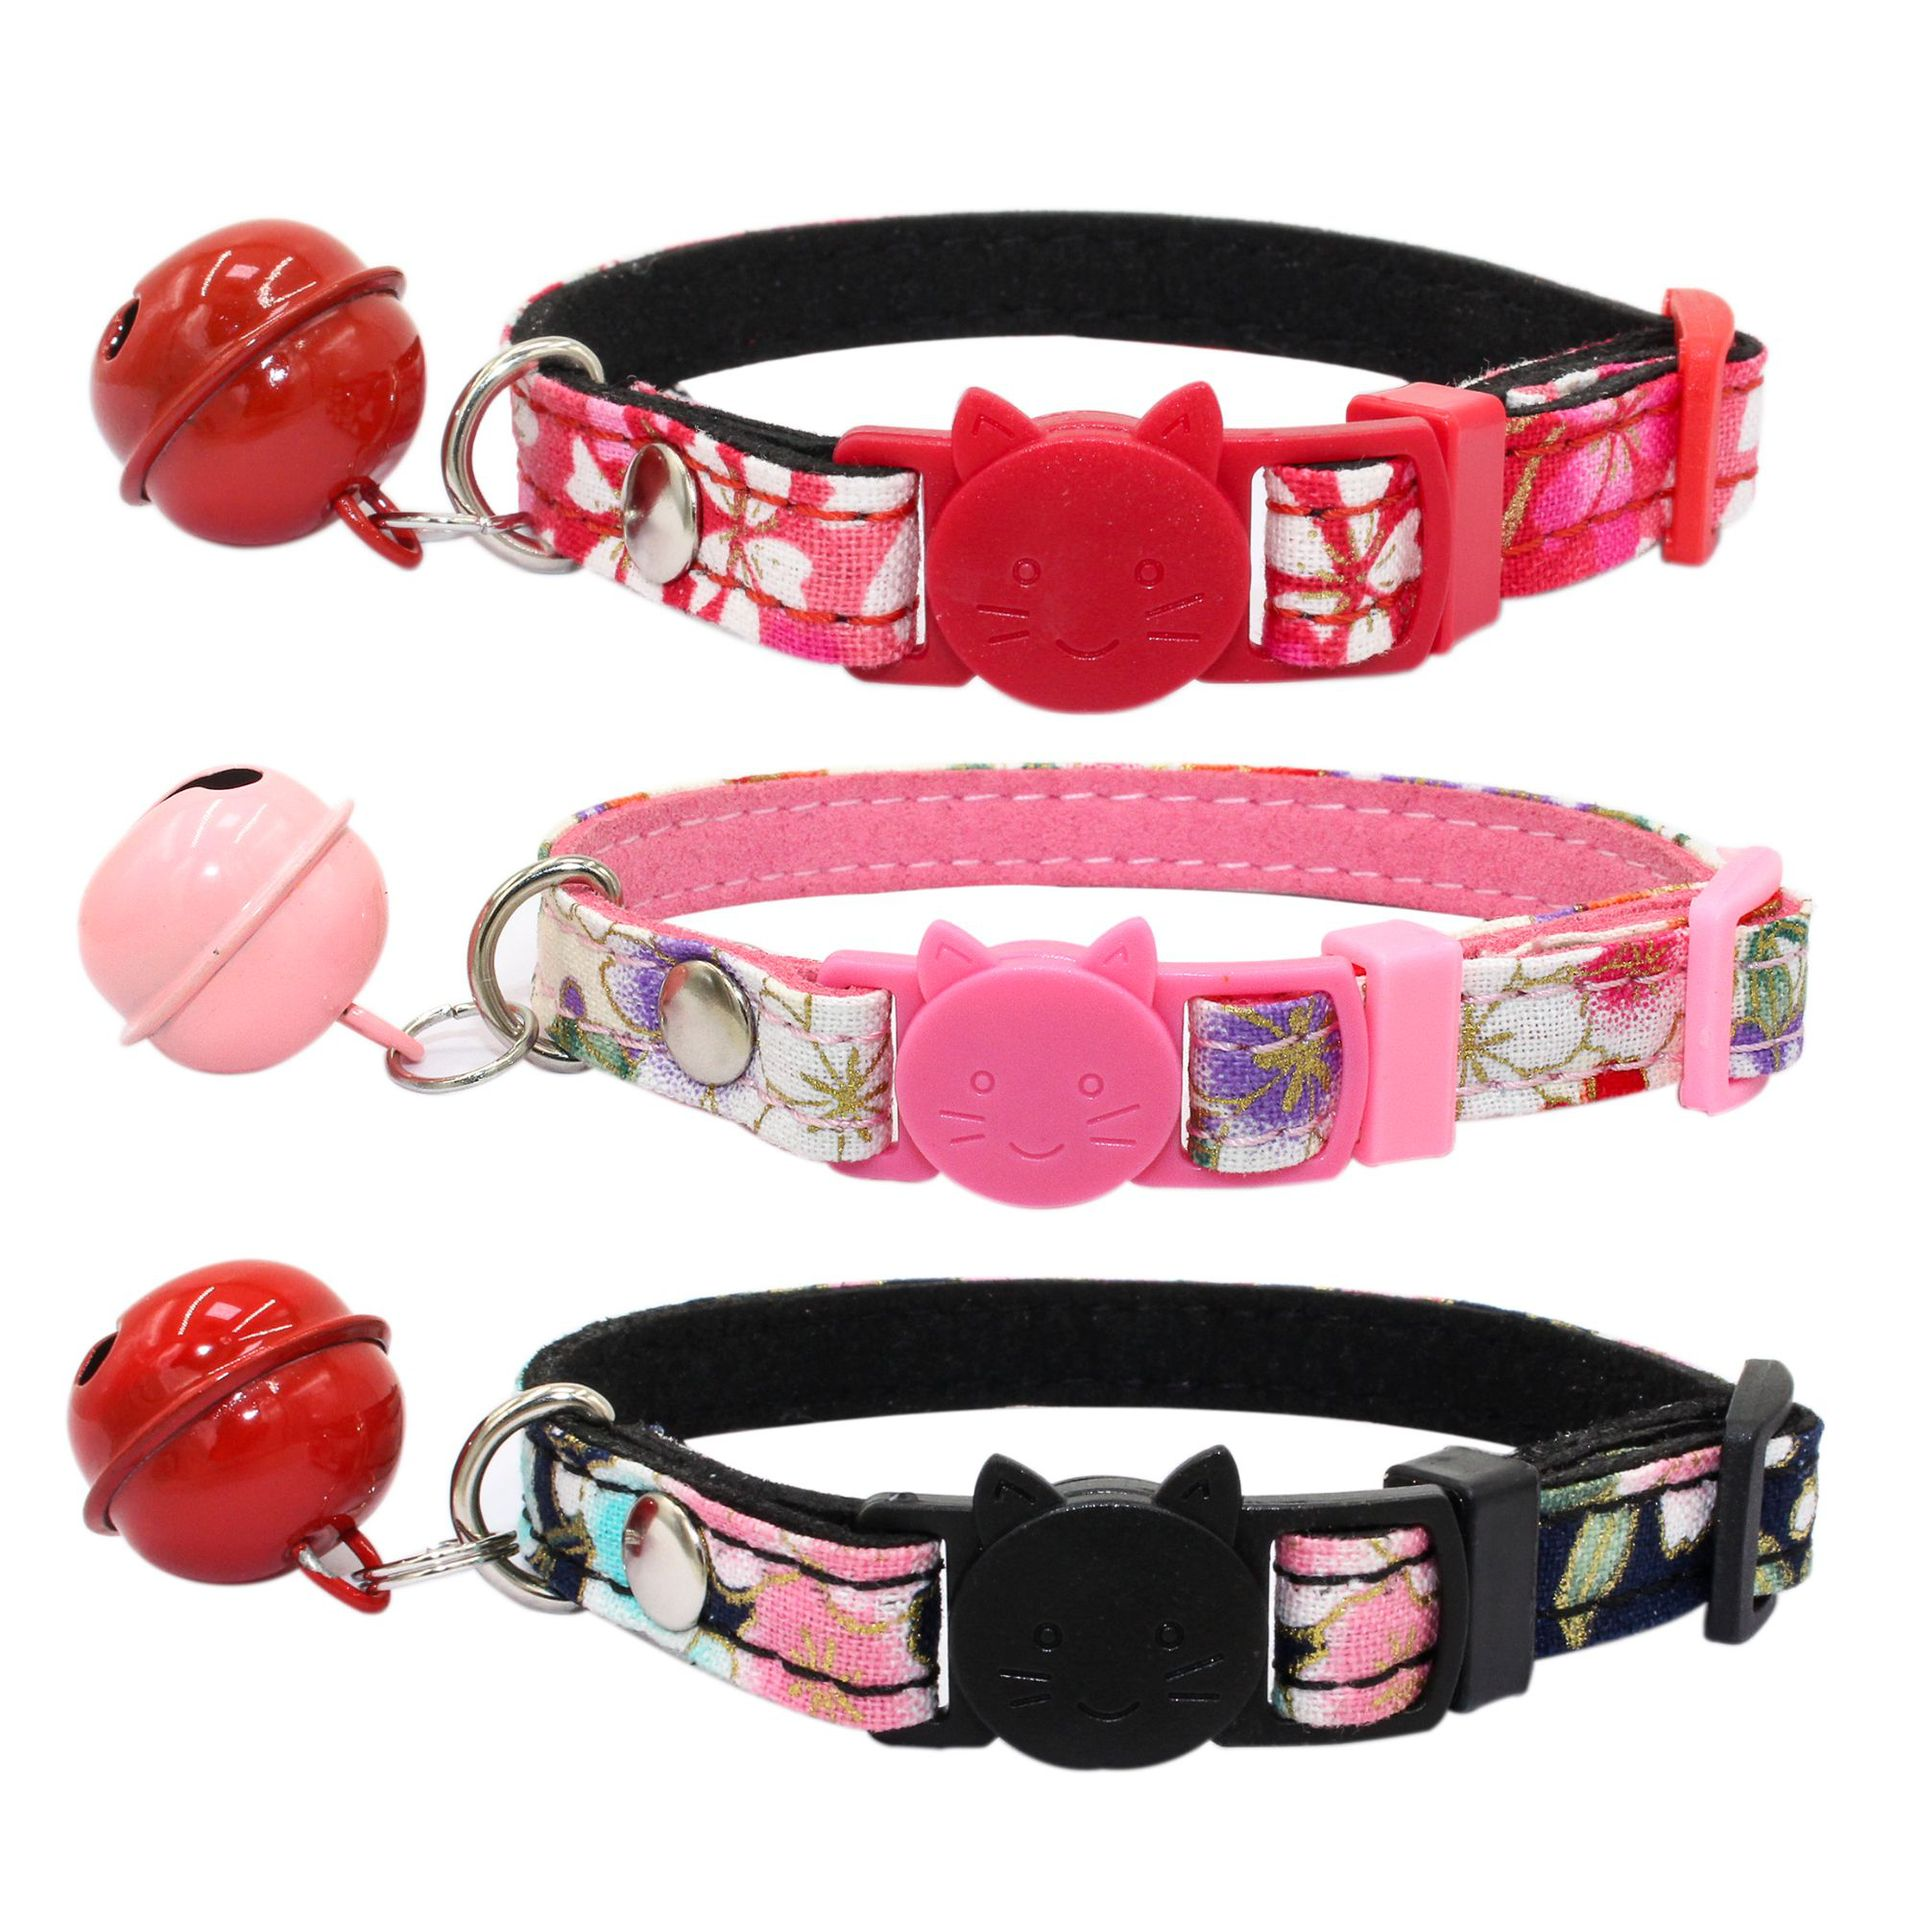 Cute Cat Head Safety Buckle And Wind Cat Neck Ring With Bell Small Dog Chain Printed Pet Collar Amazon Hot Sales